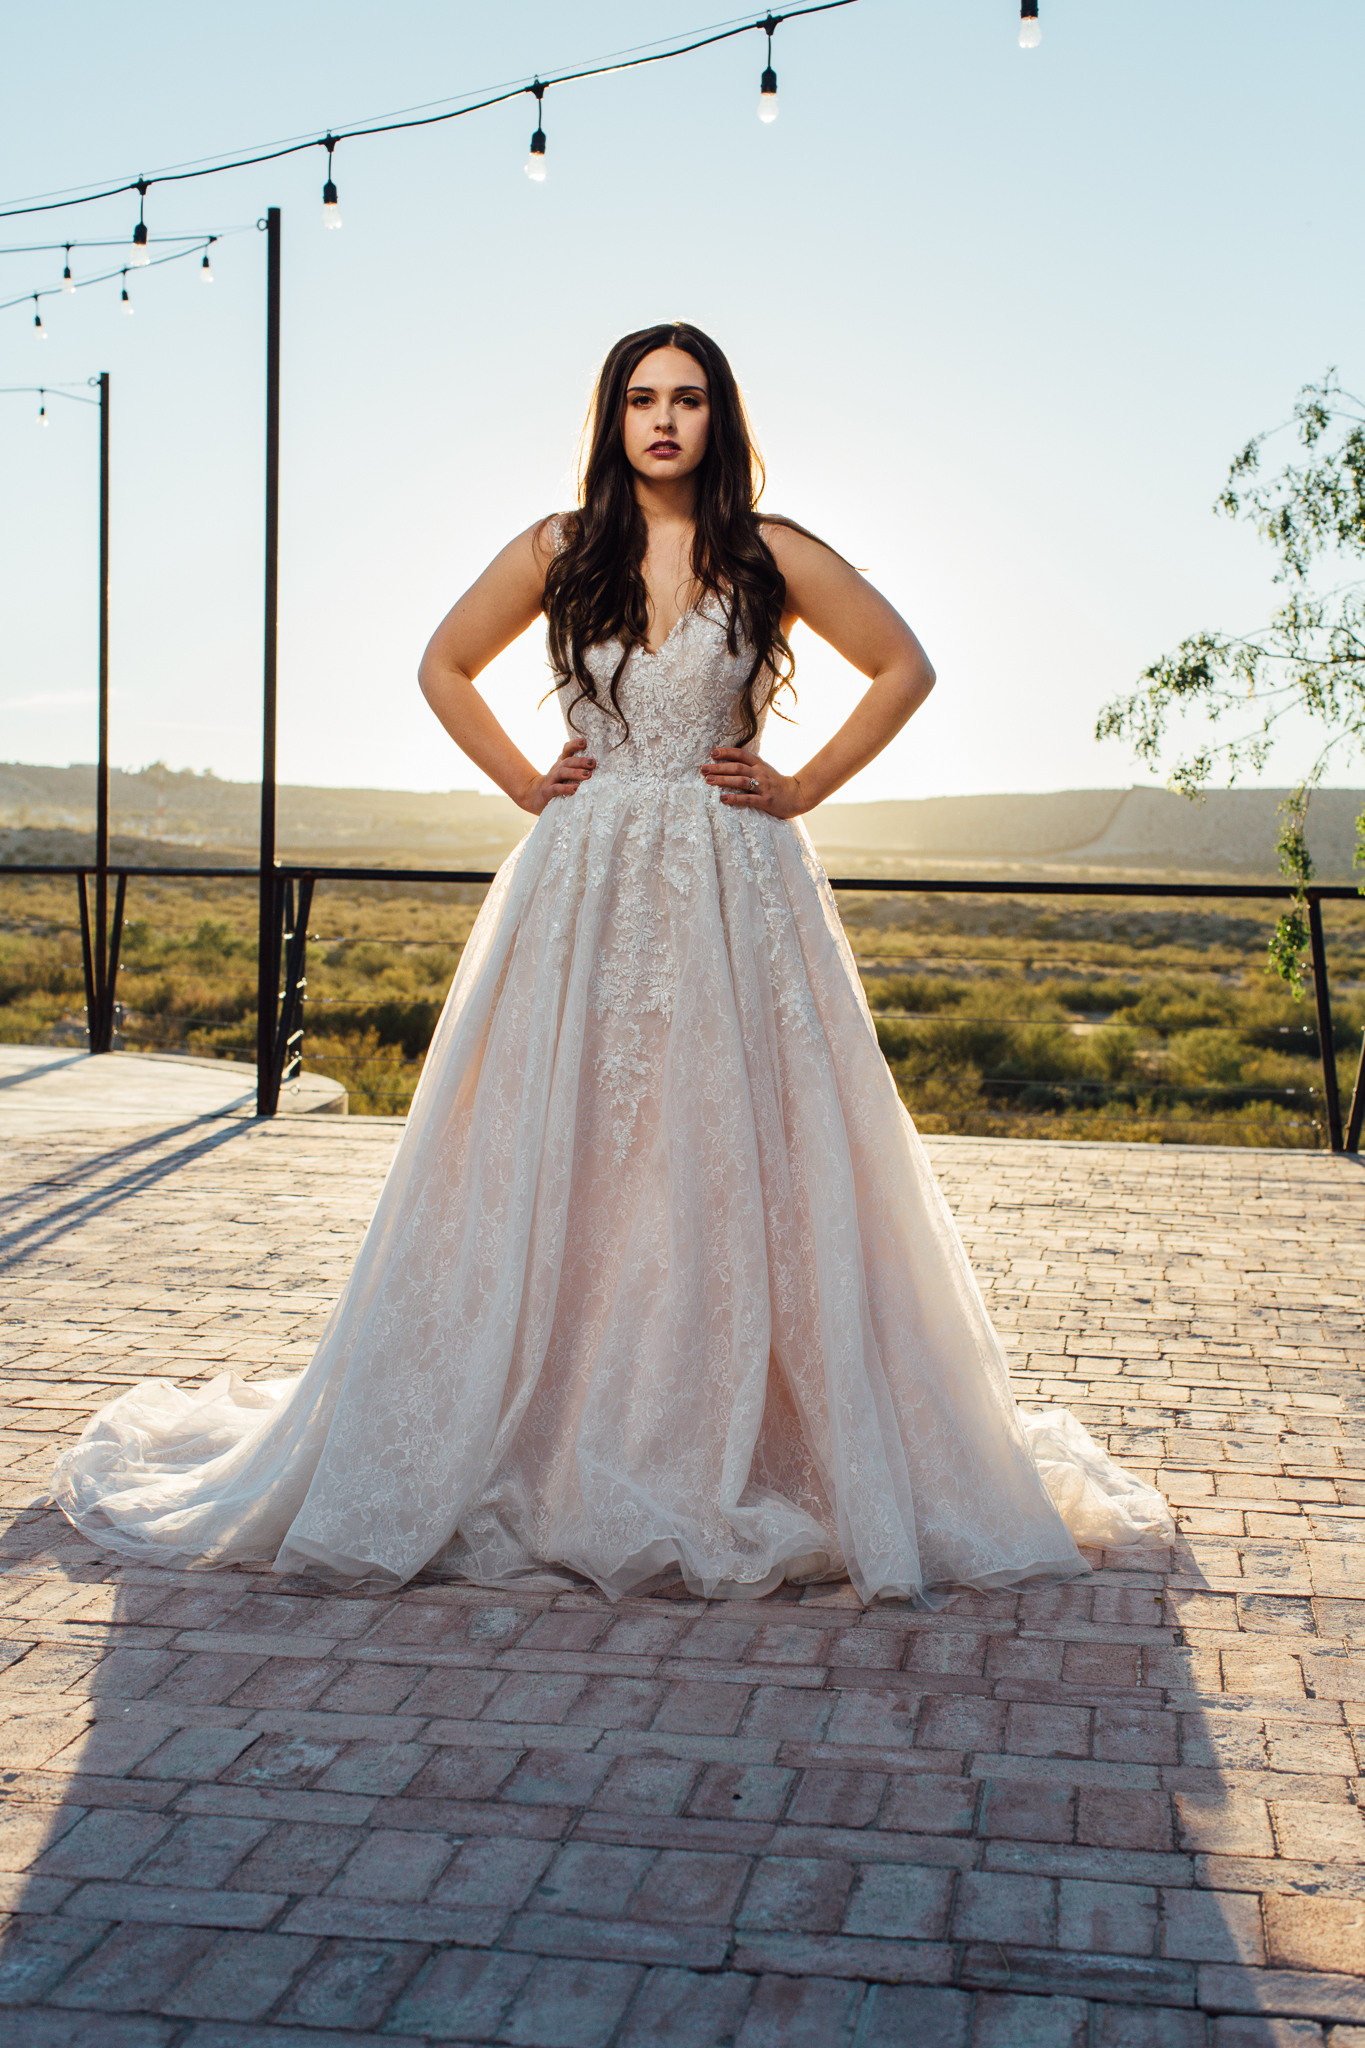 el-paso-wedding-photographer-125.jpg